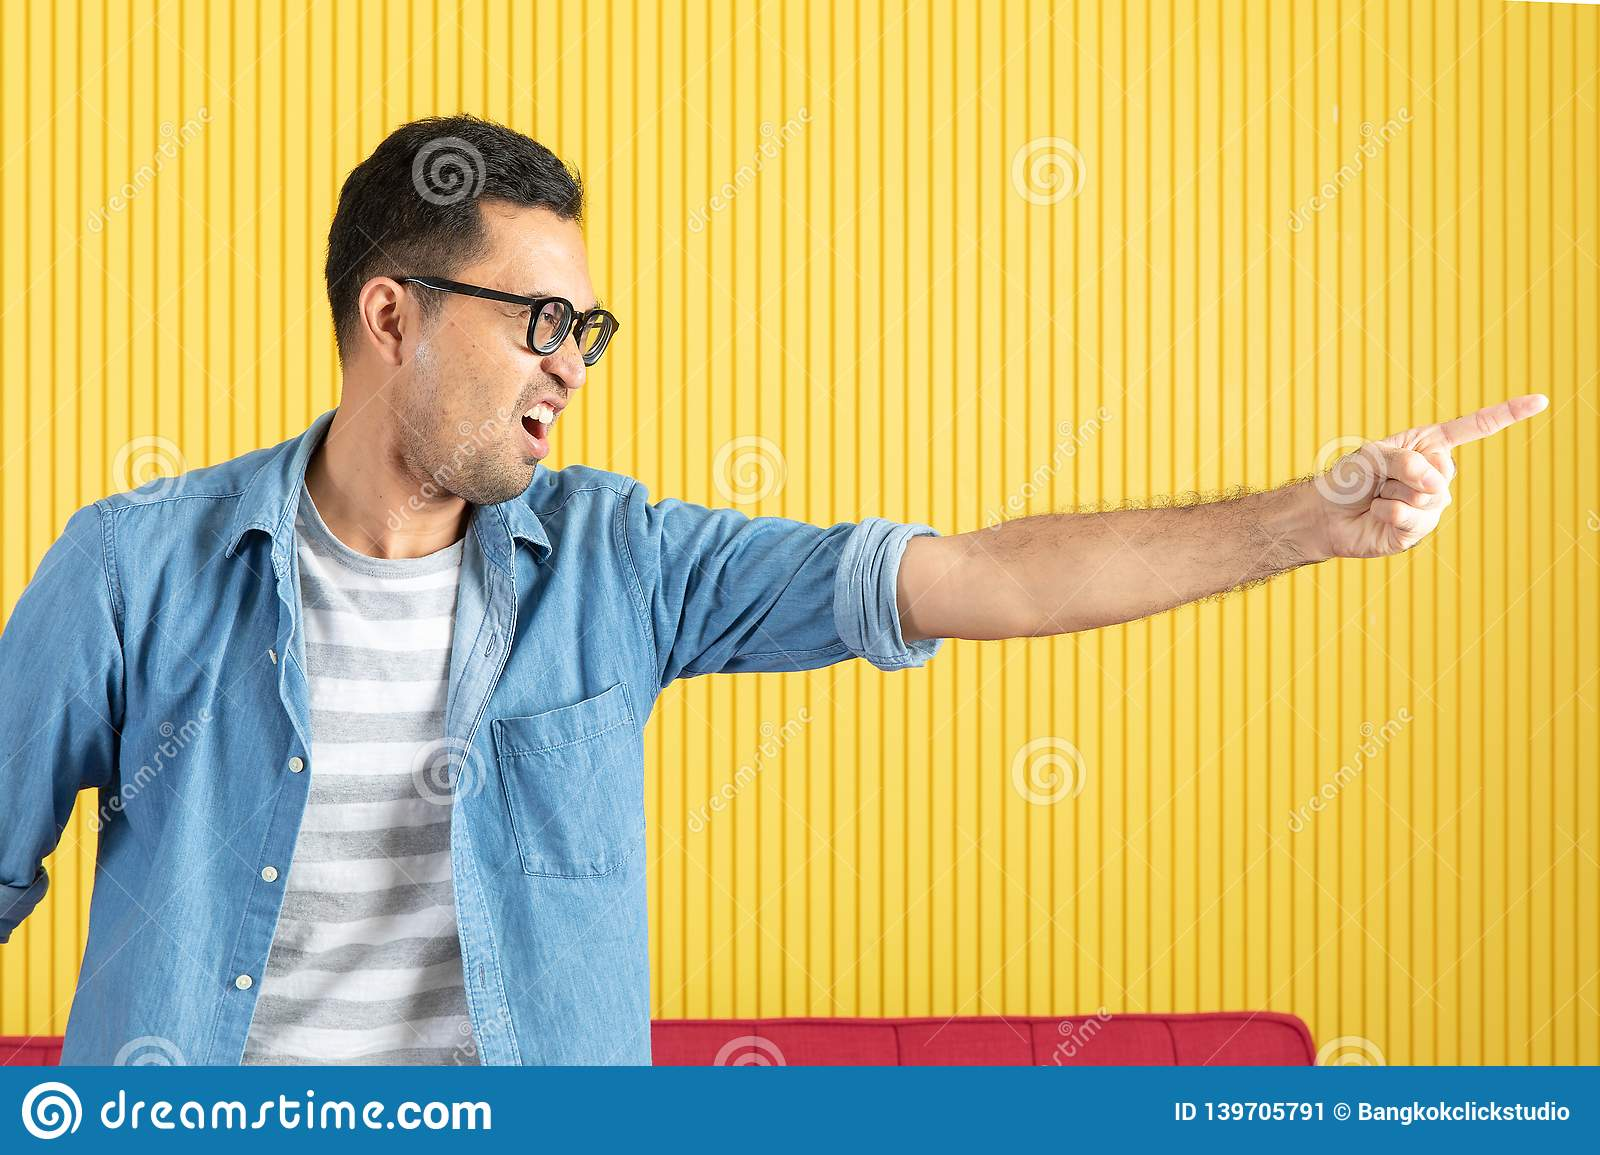 Side-view, close up of young Asian handsome bearded man, wearing eyeglasses, in denim shirt, pointing playfully to his left side,